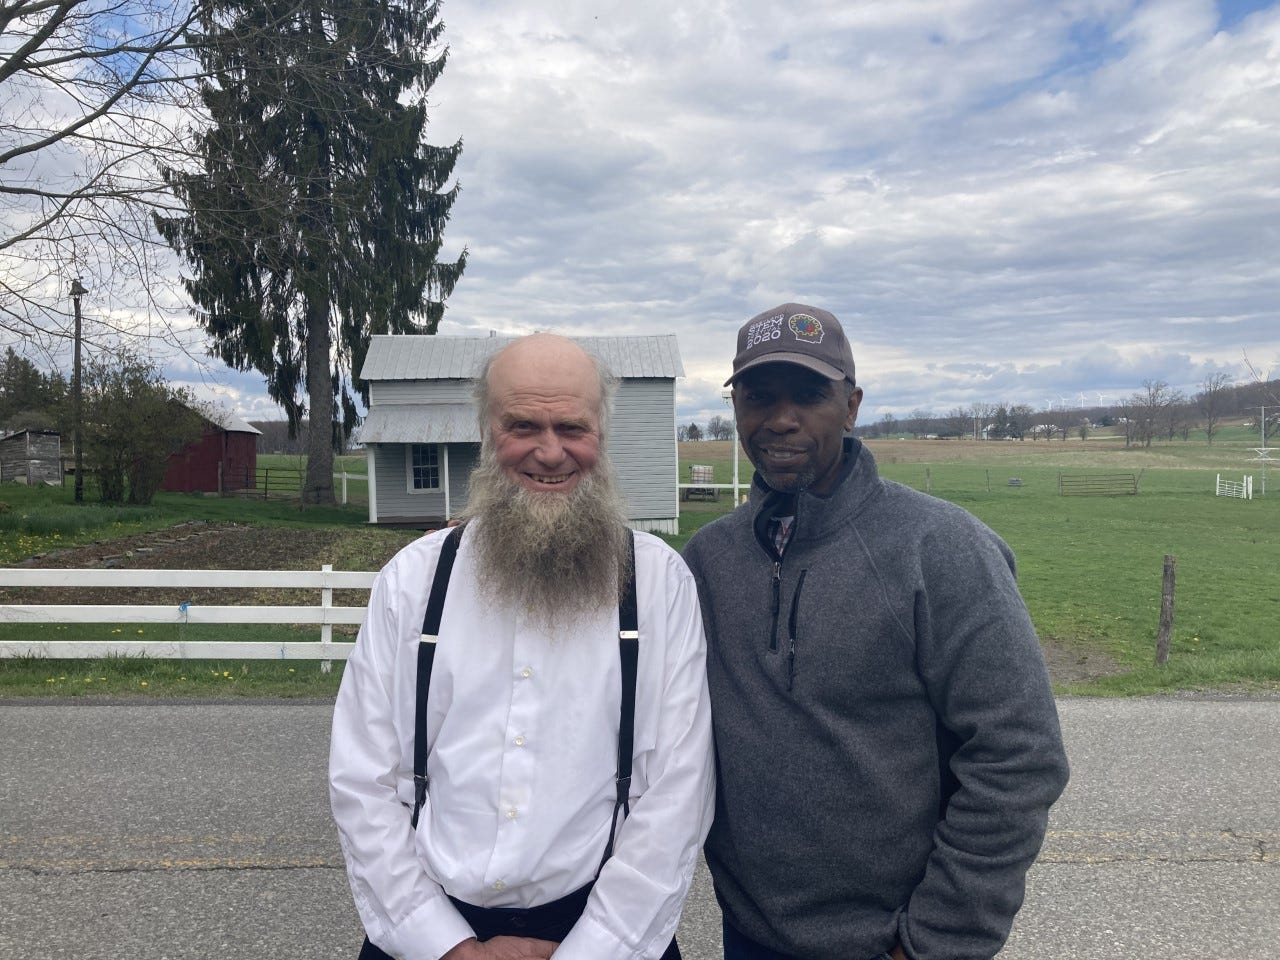 Sam Yoder, the Amish farmer on whose property the former church now sits, poses for a photograph with NAACP Maryland State Conference President Willie Flowers.